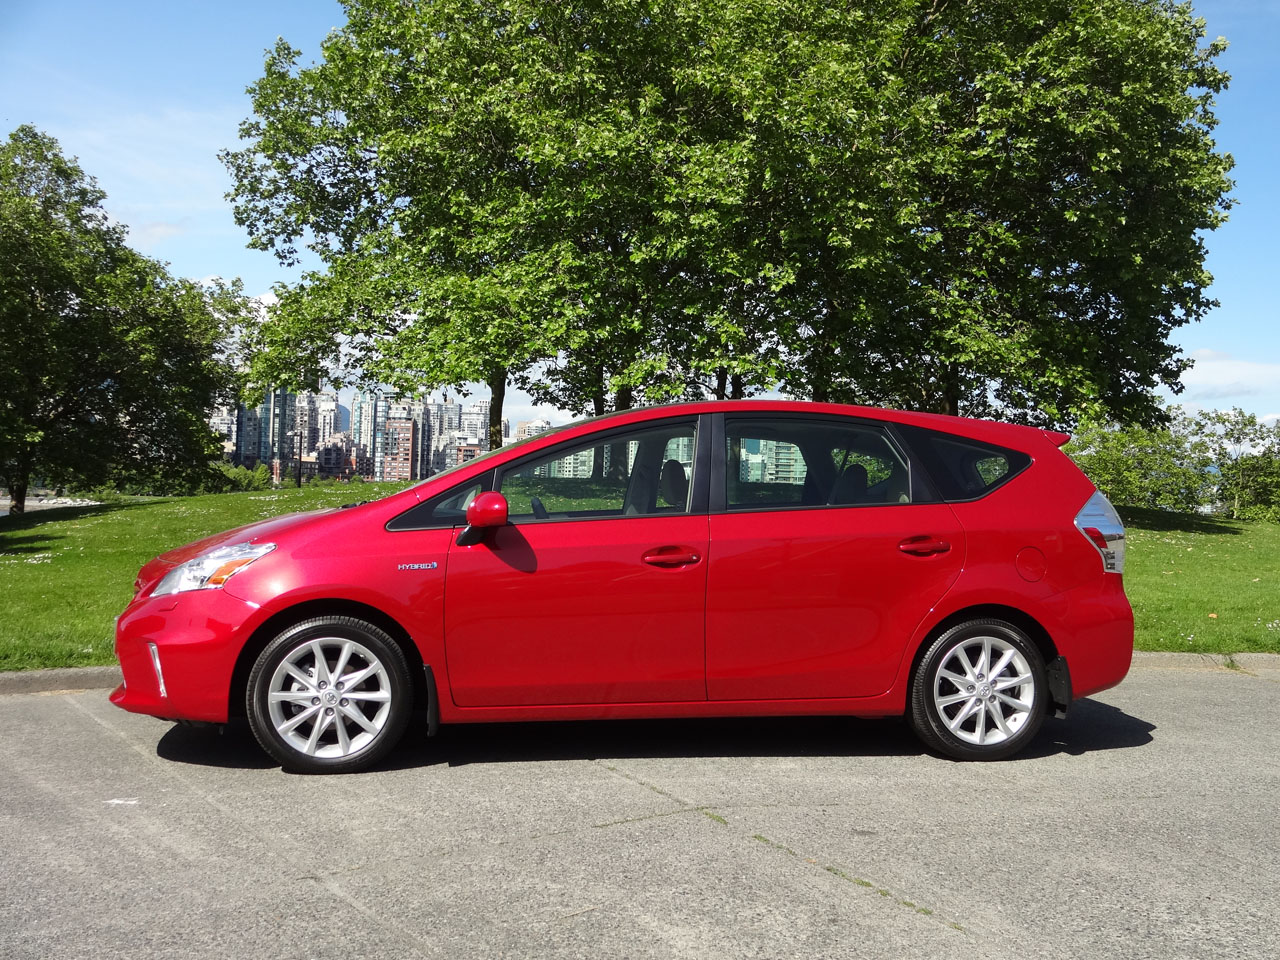 2014 toyota prius v touring road test review carcostcanada. Black Bedroom Furniture Sets. Home Design Ideas